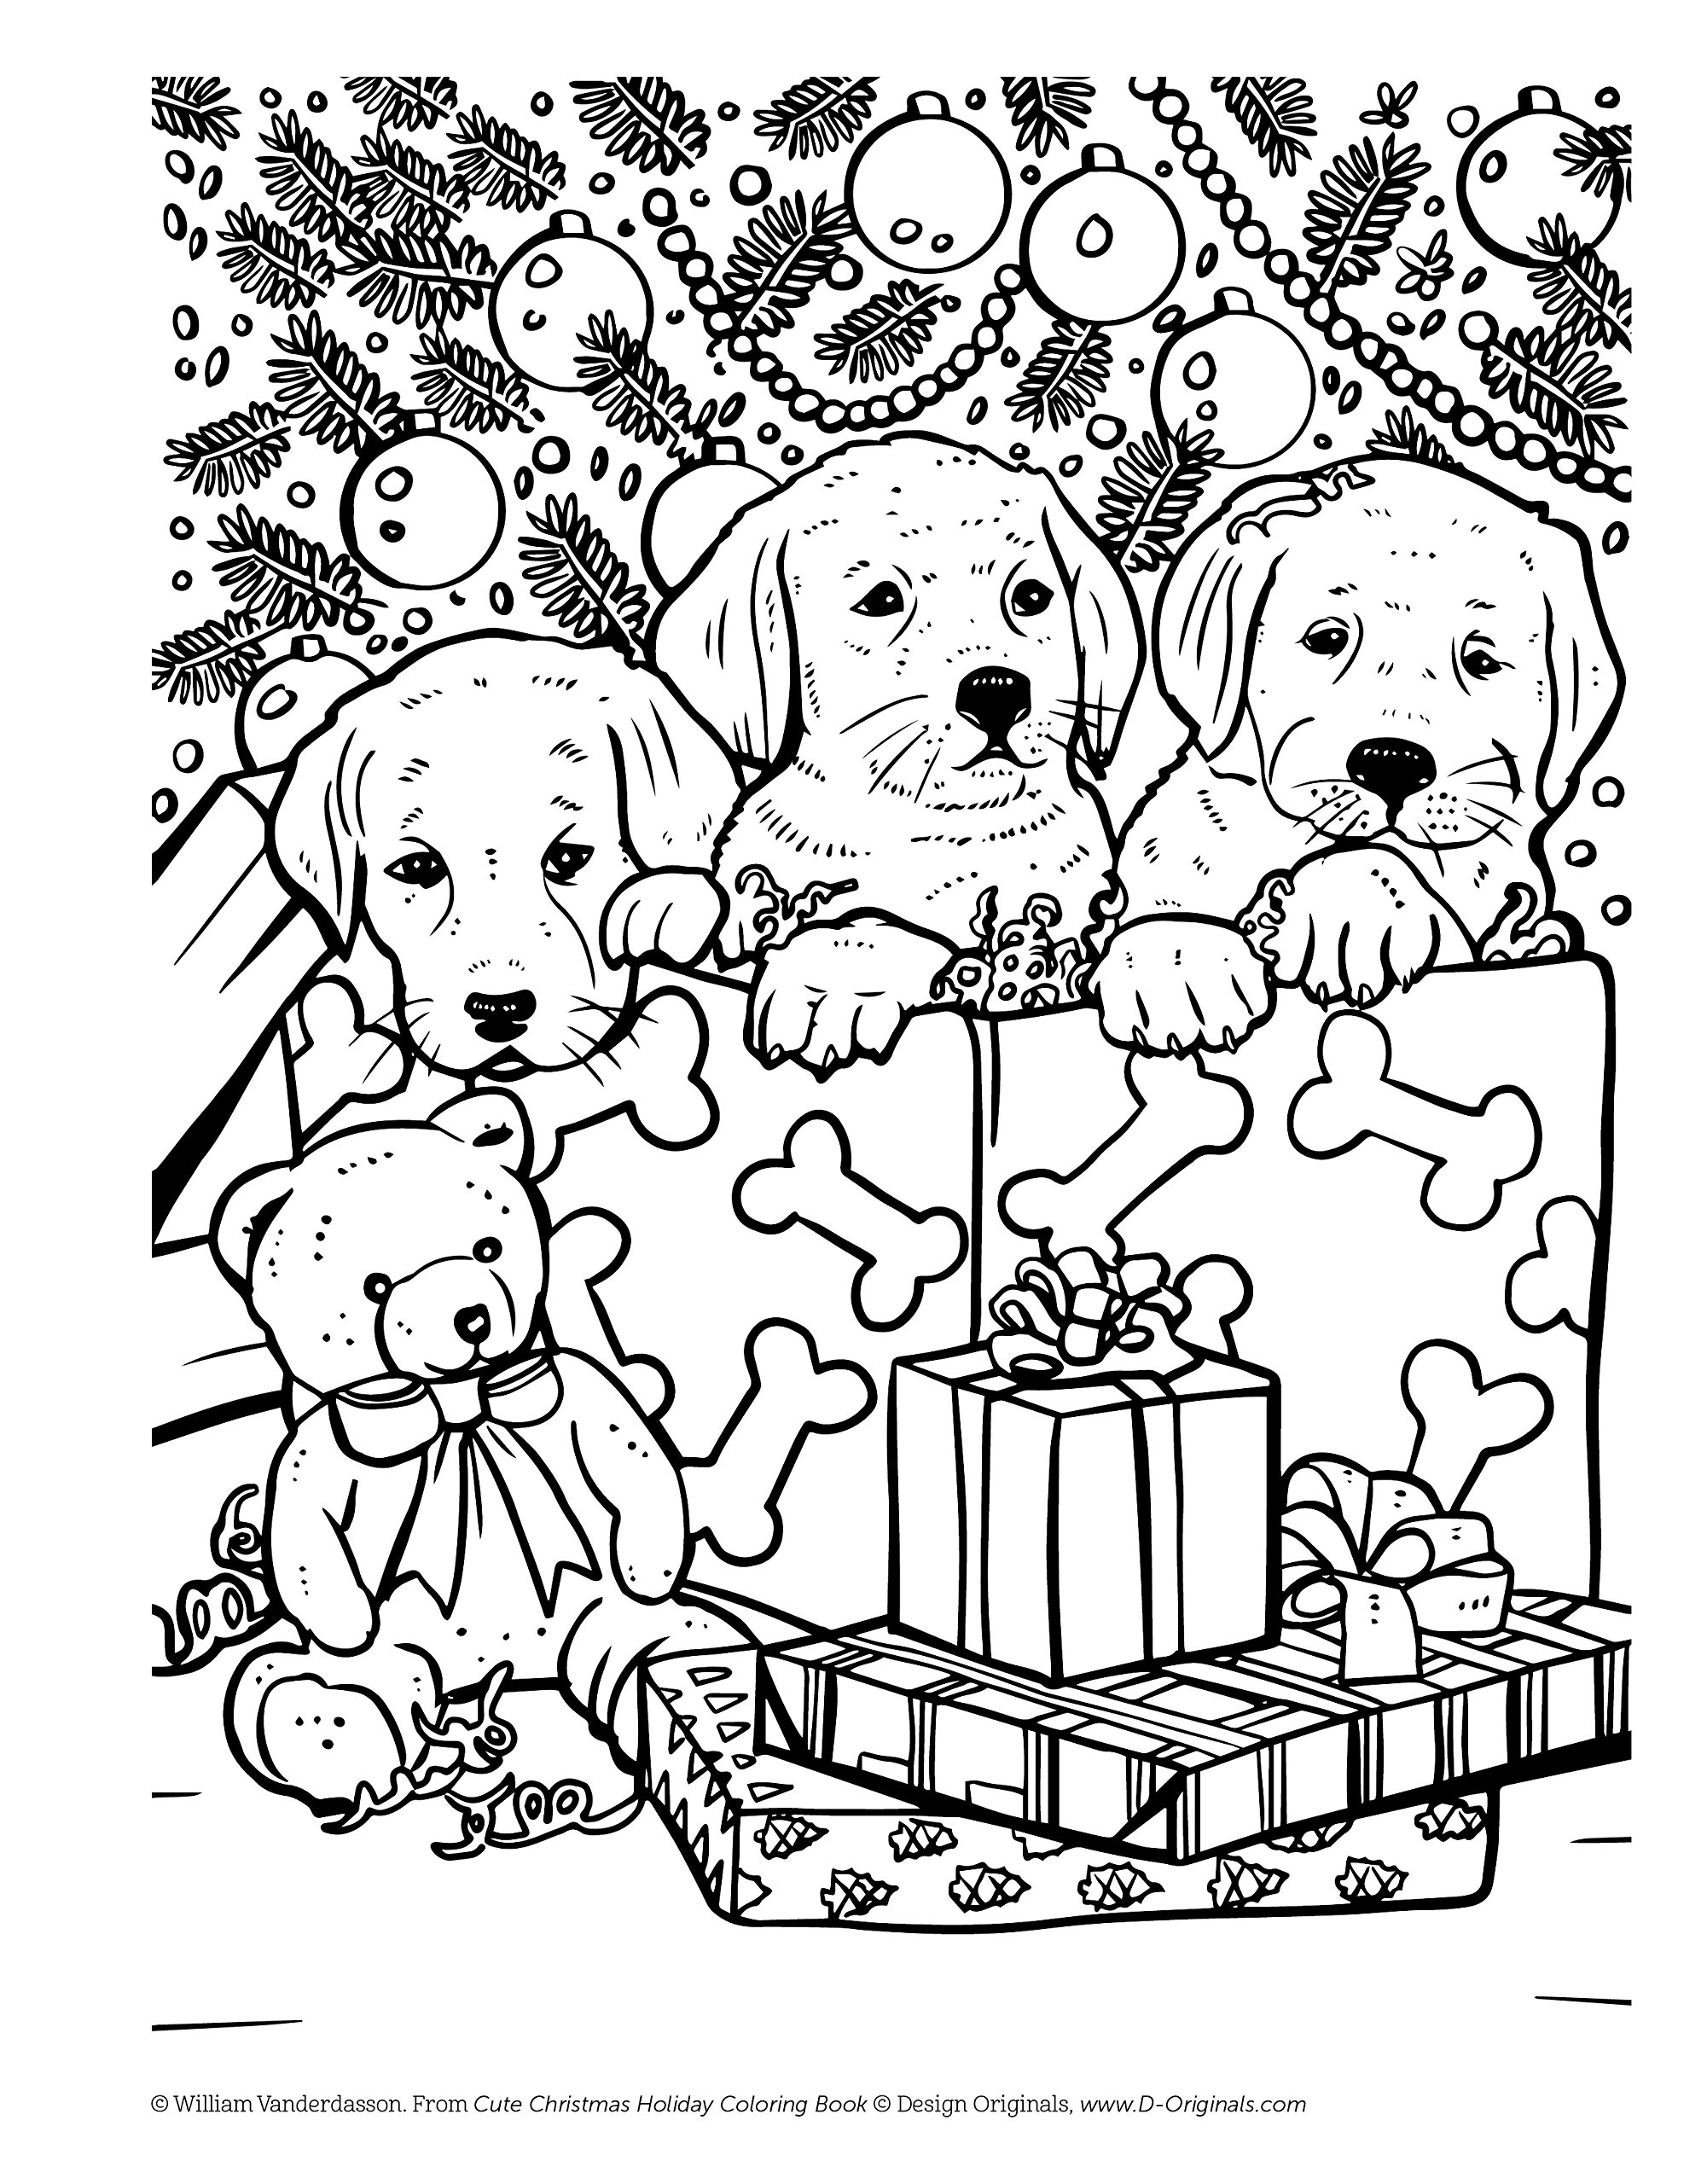 Coloring book download zip - Cute Christmas Holiday Coloring Book Design Originals 32 Kittens Puppies And Other Critters In One Side Only Designs On High Quality Extra Thick